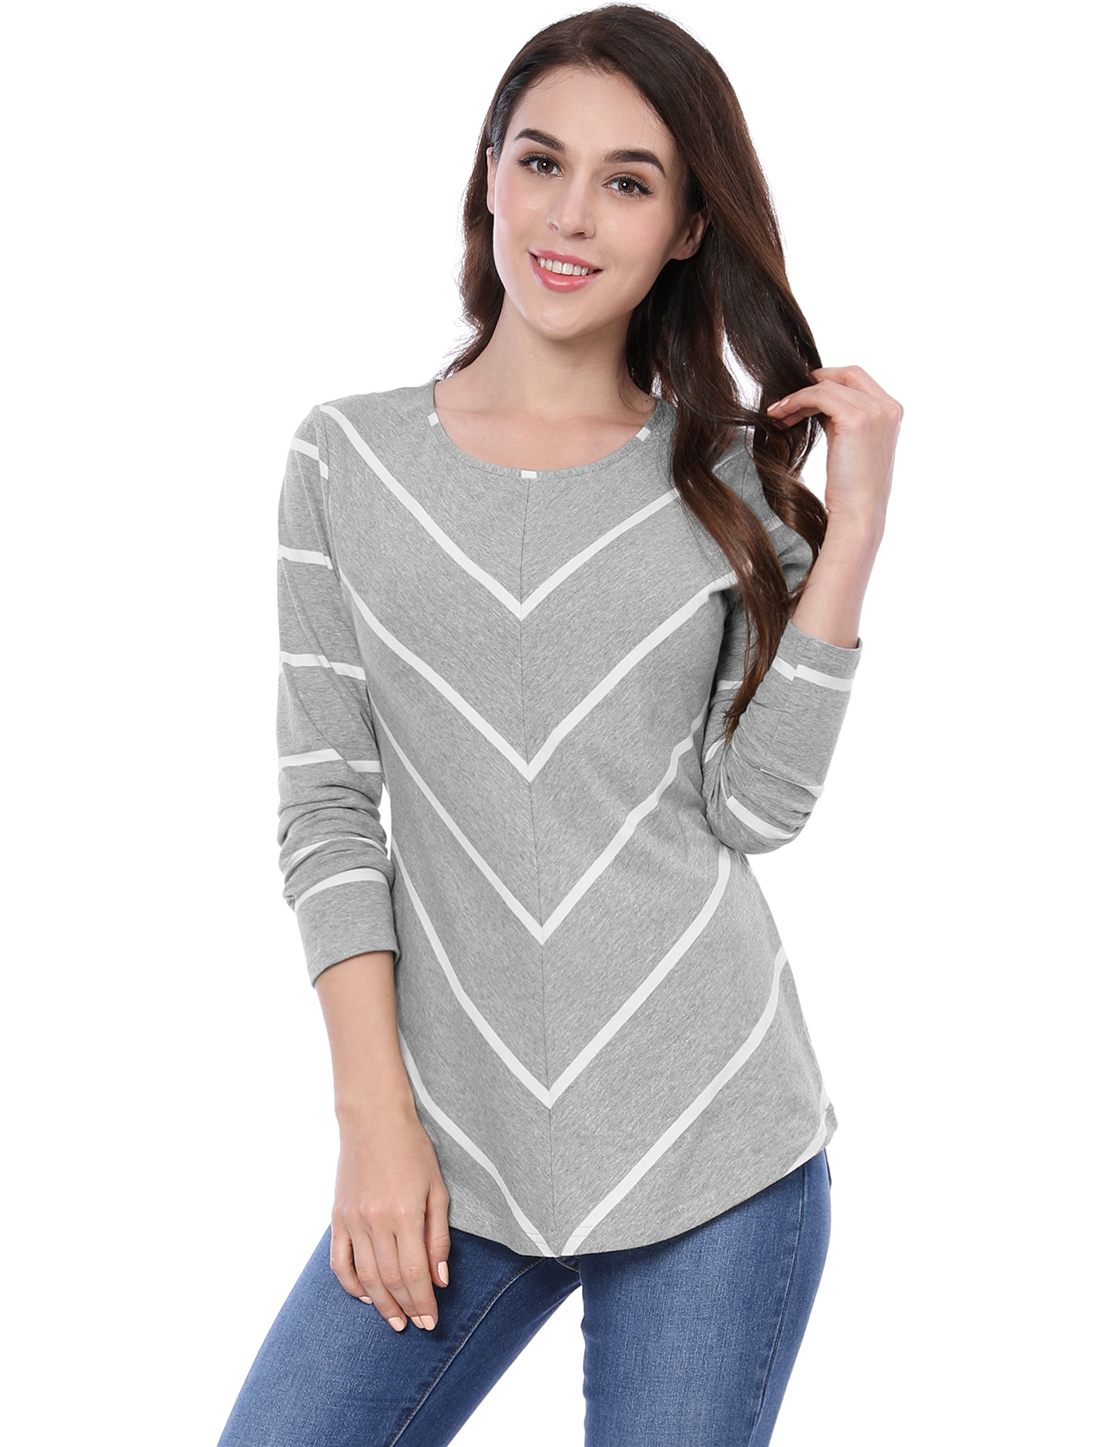 Women Long Sleeves Scoop Neck Striped Chevron Print Top Gray M